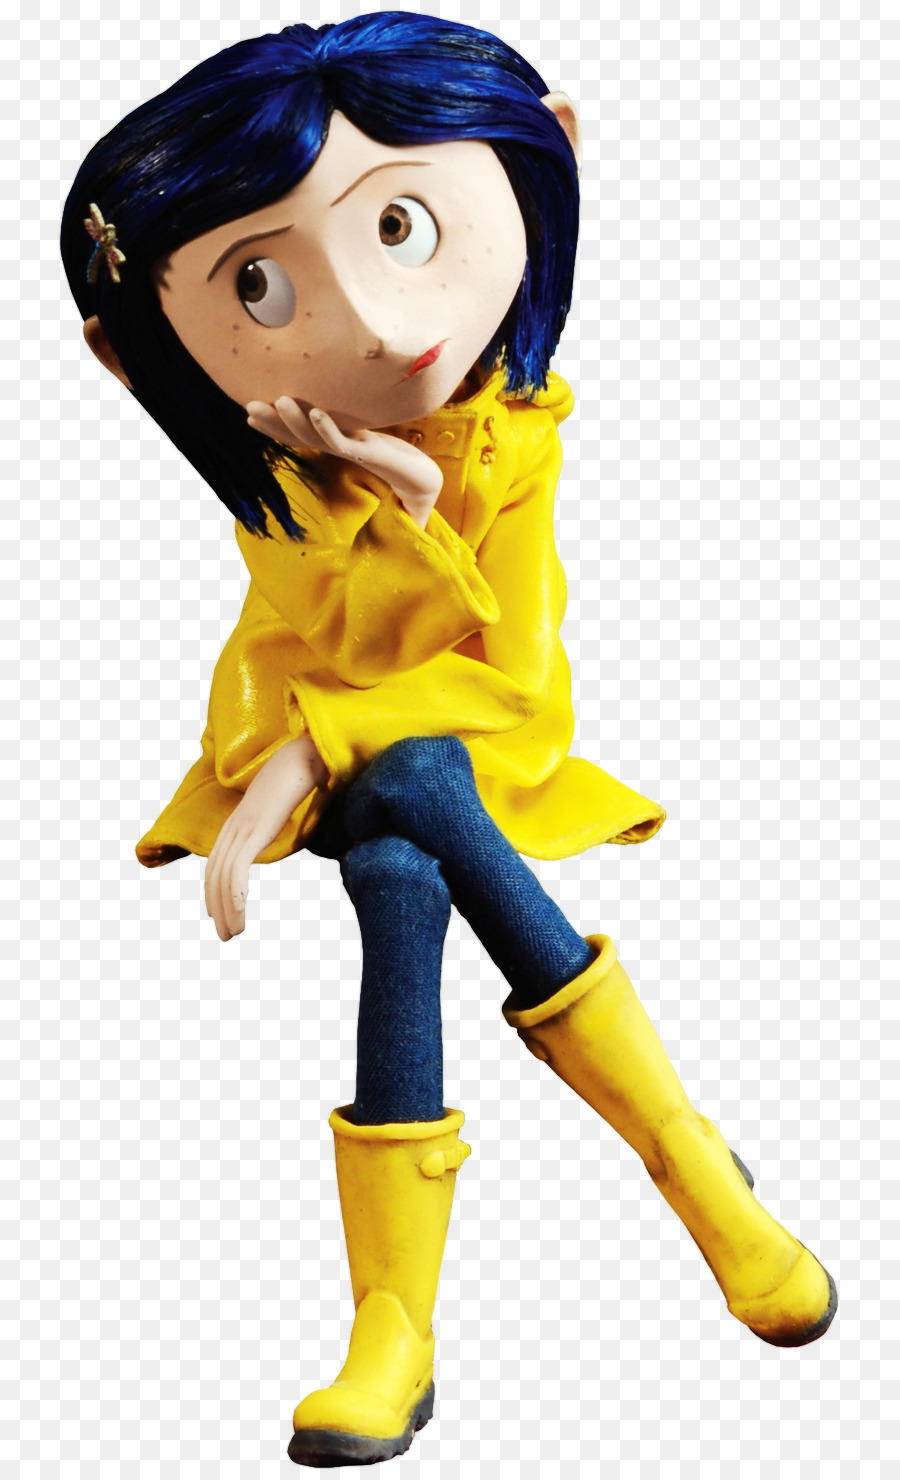 coraline animation movie free download